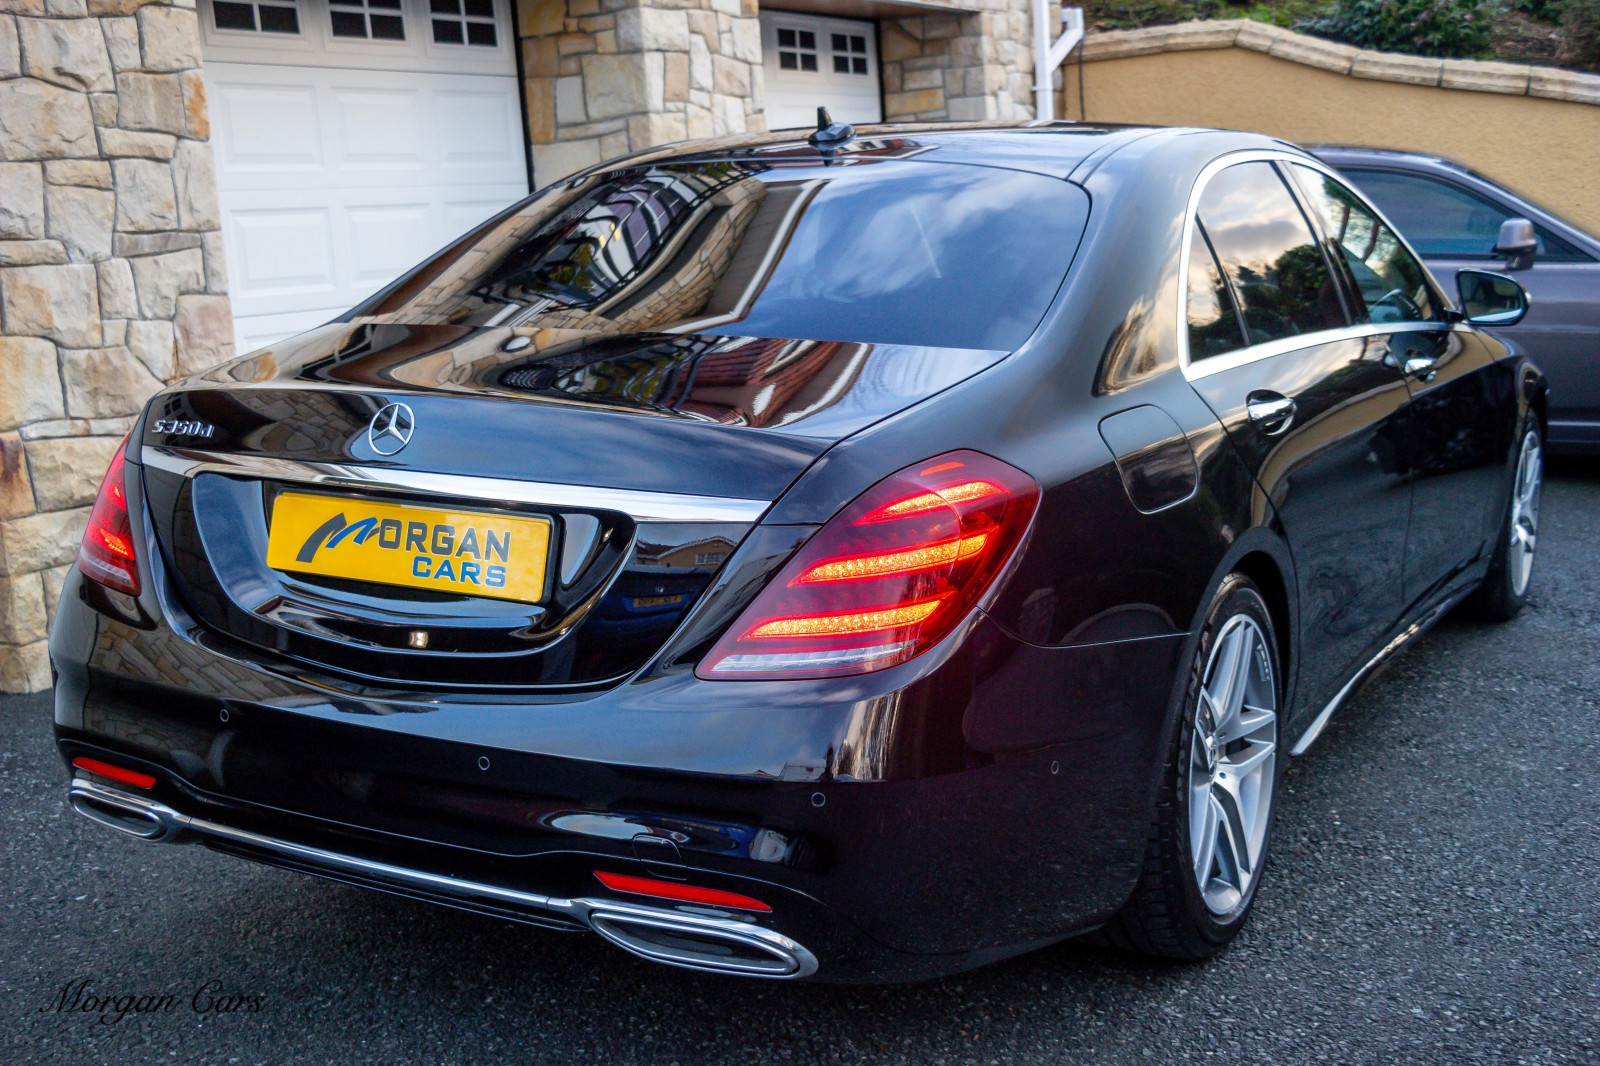 2018 Mercedes-Benz S Class S 350 D AMG LINE L Diesel Automatic – Morgan Cars 9 Mound Road, Warrenpoint, Newry BT34 3LW, UK full